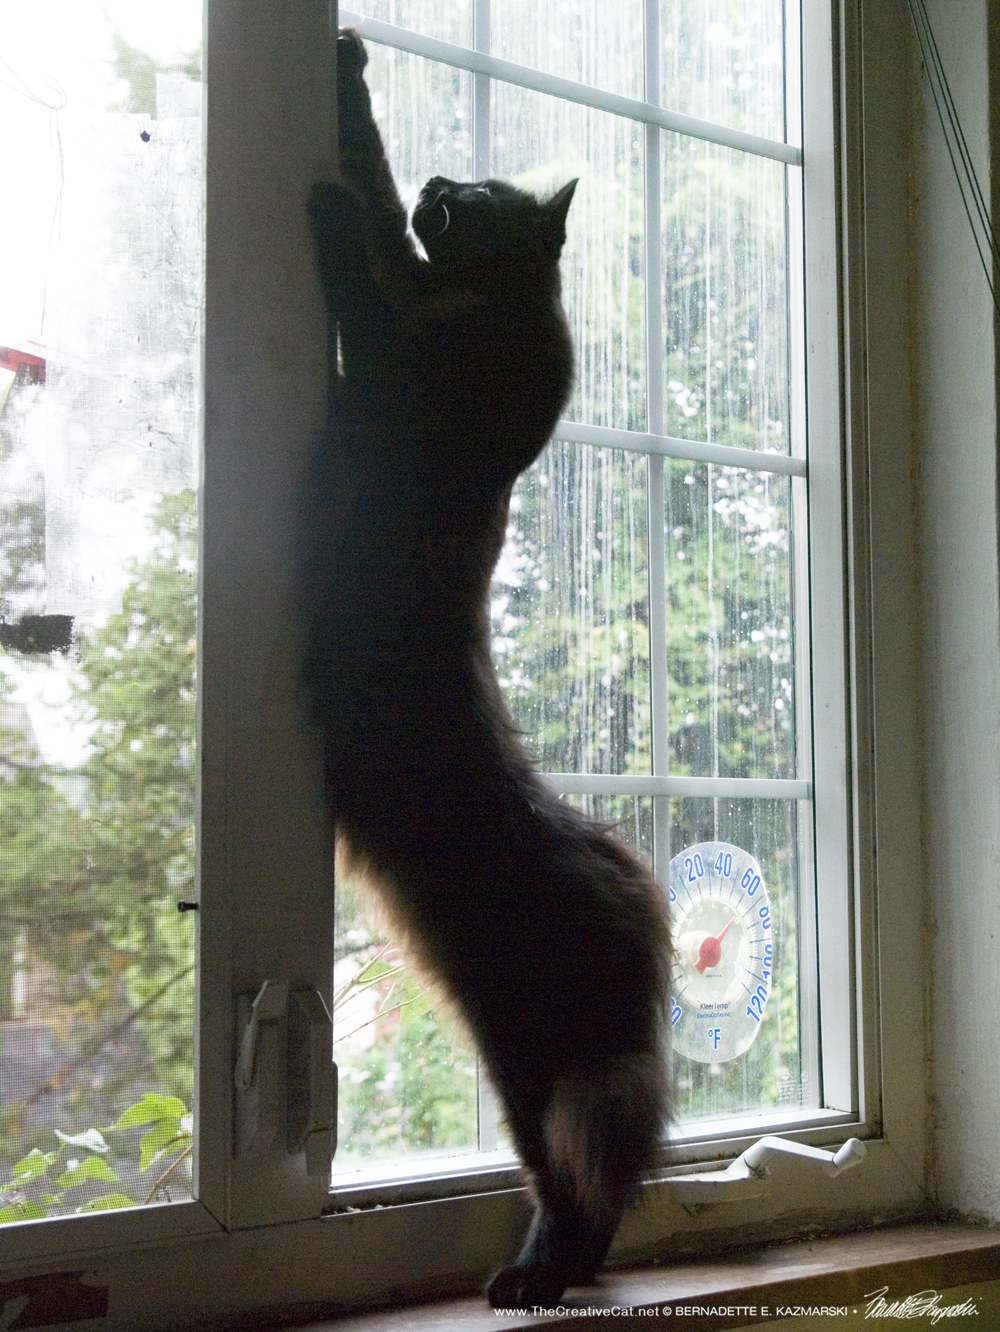 """Hamlet says, """"Come here, little birdie, I just want to play!"""" With the tree and lilac missing the birds don't have a sheltered place to land so they line up along the top of the casement window. He is one long slender cat."""